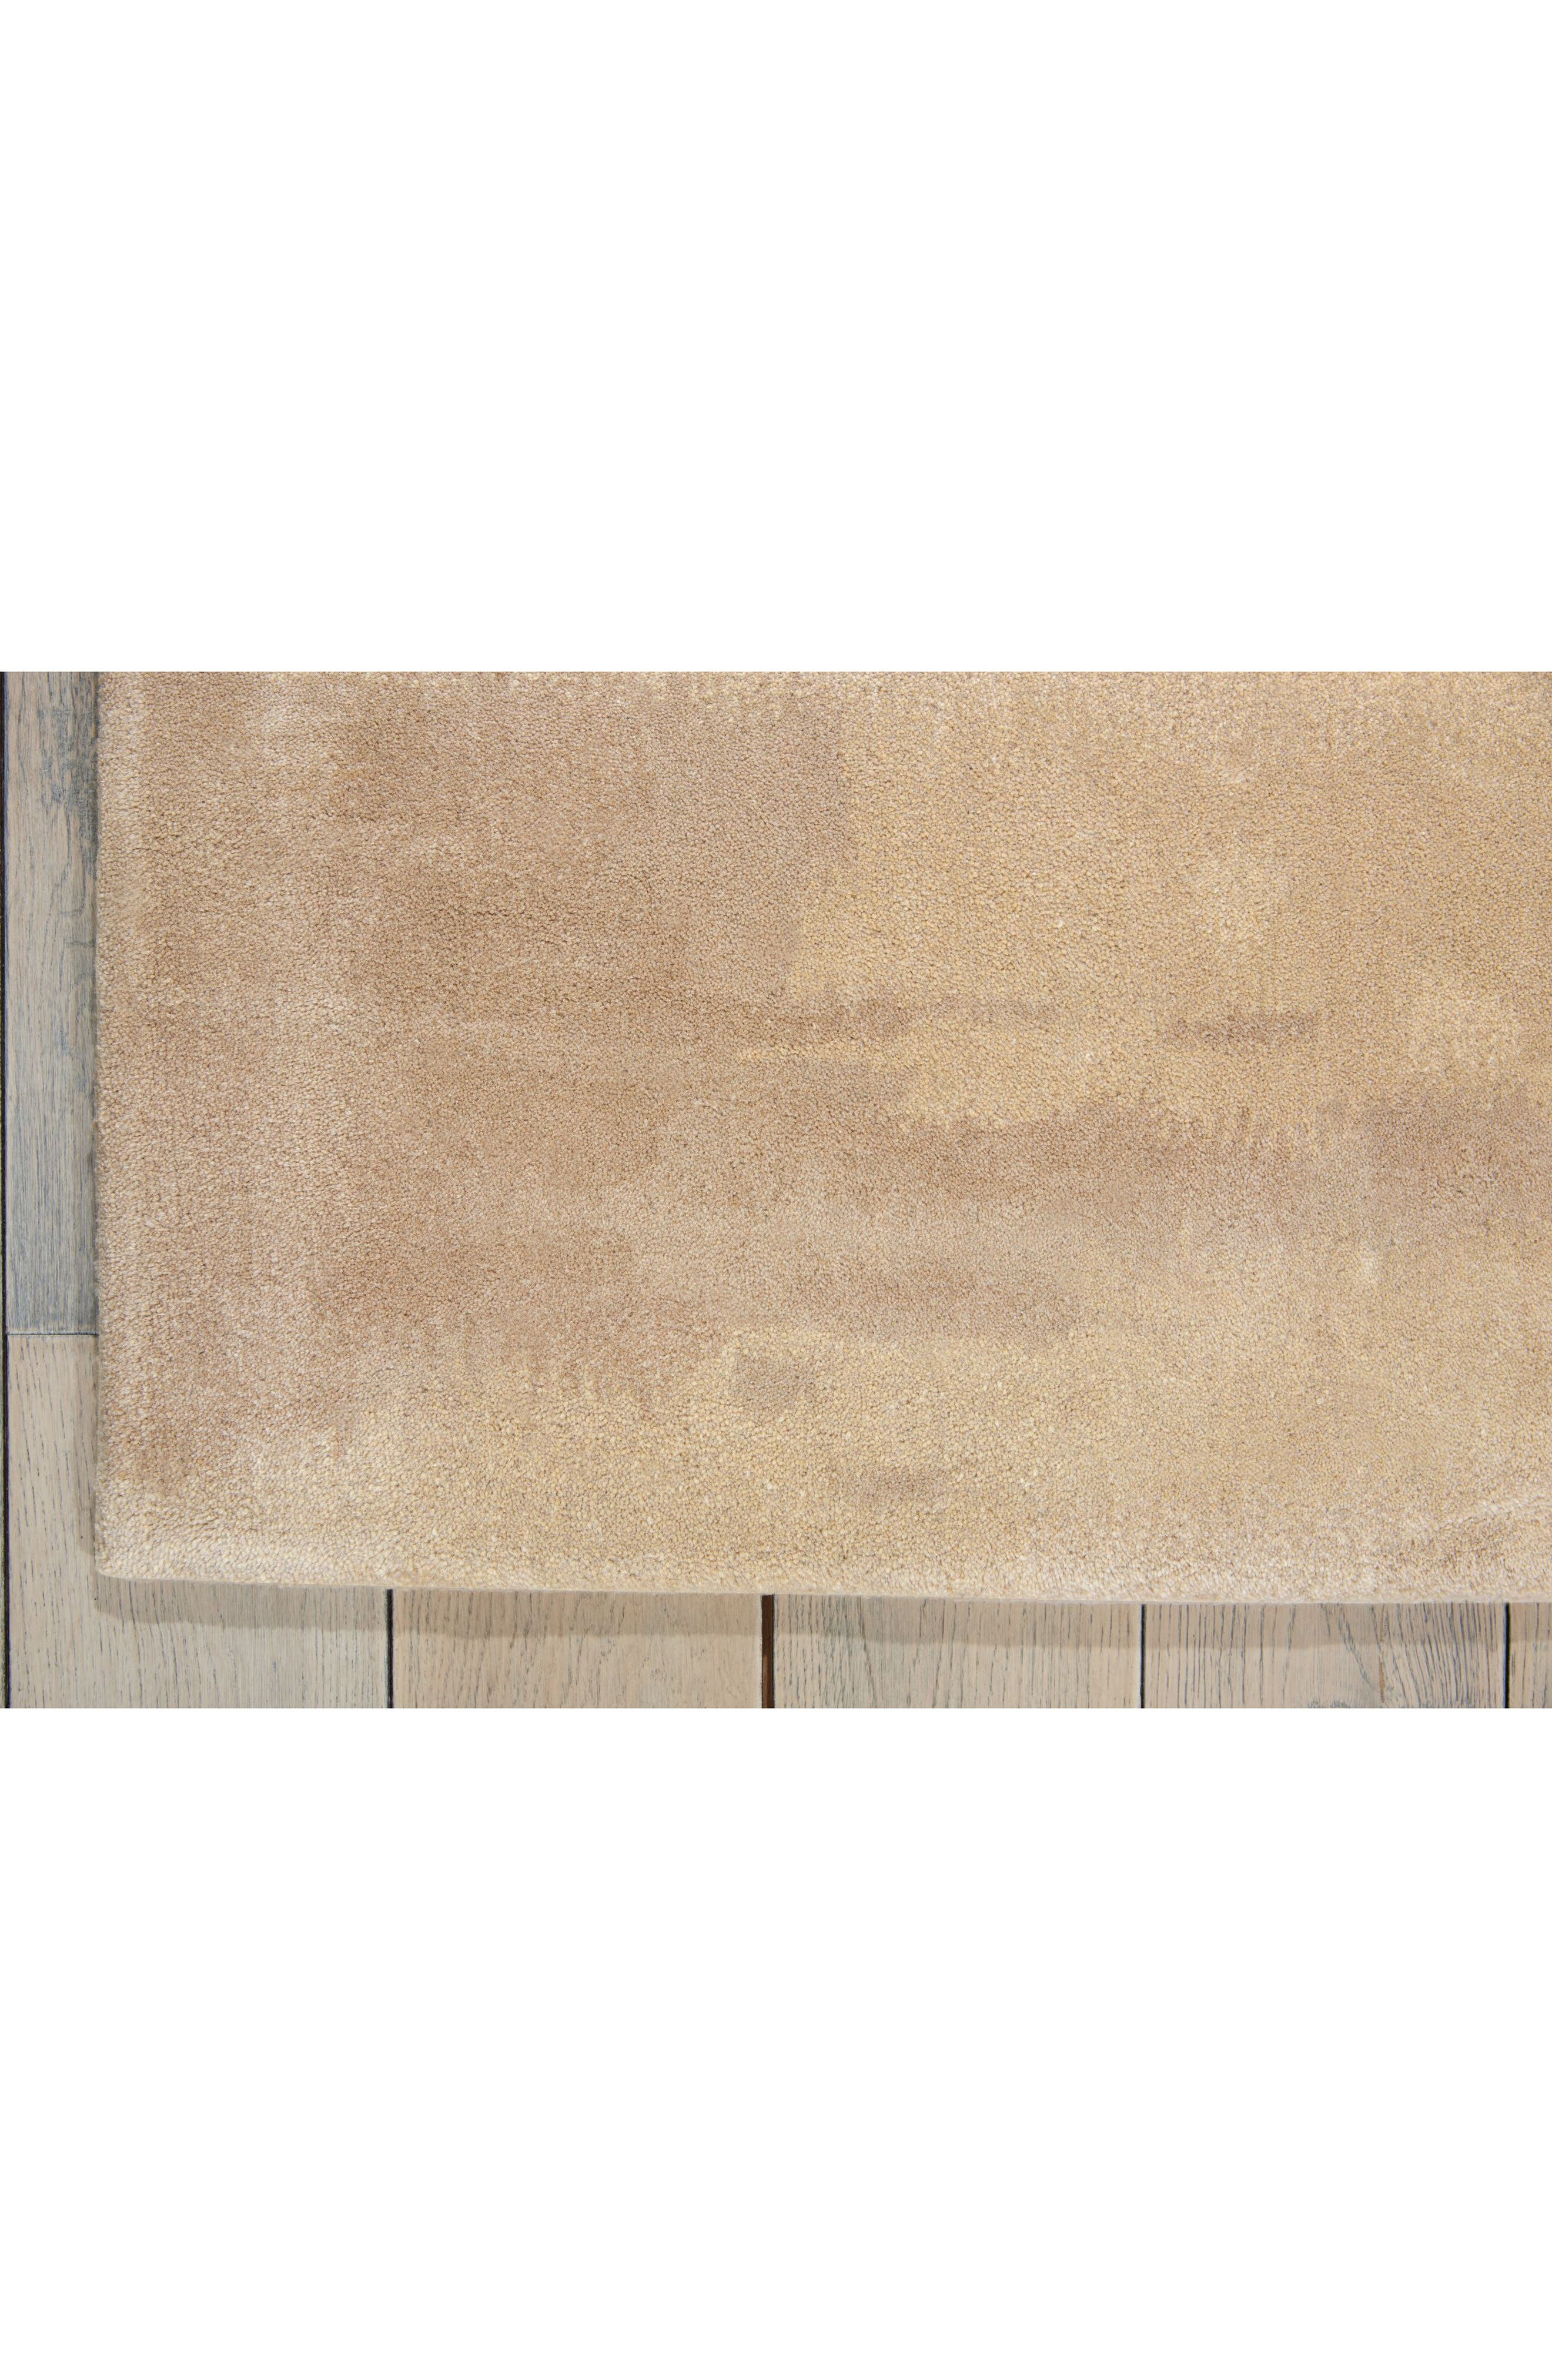 Luster Wash Wool Area Rug,                             Alternate thumbnail 23, color,